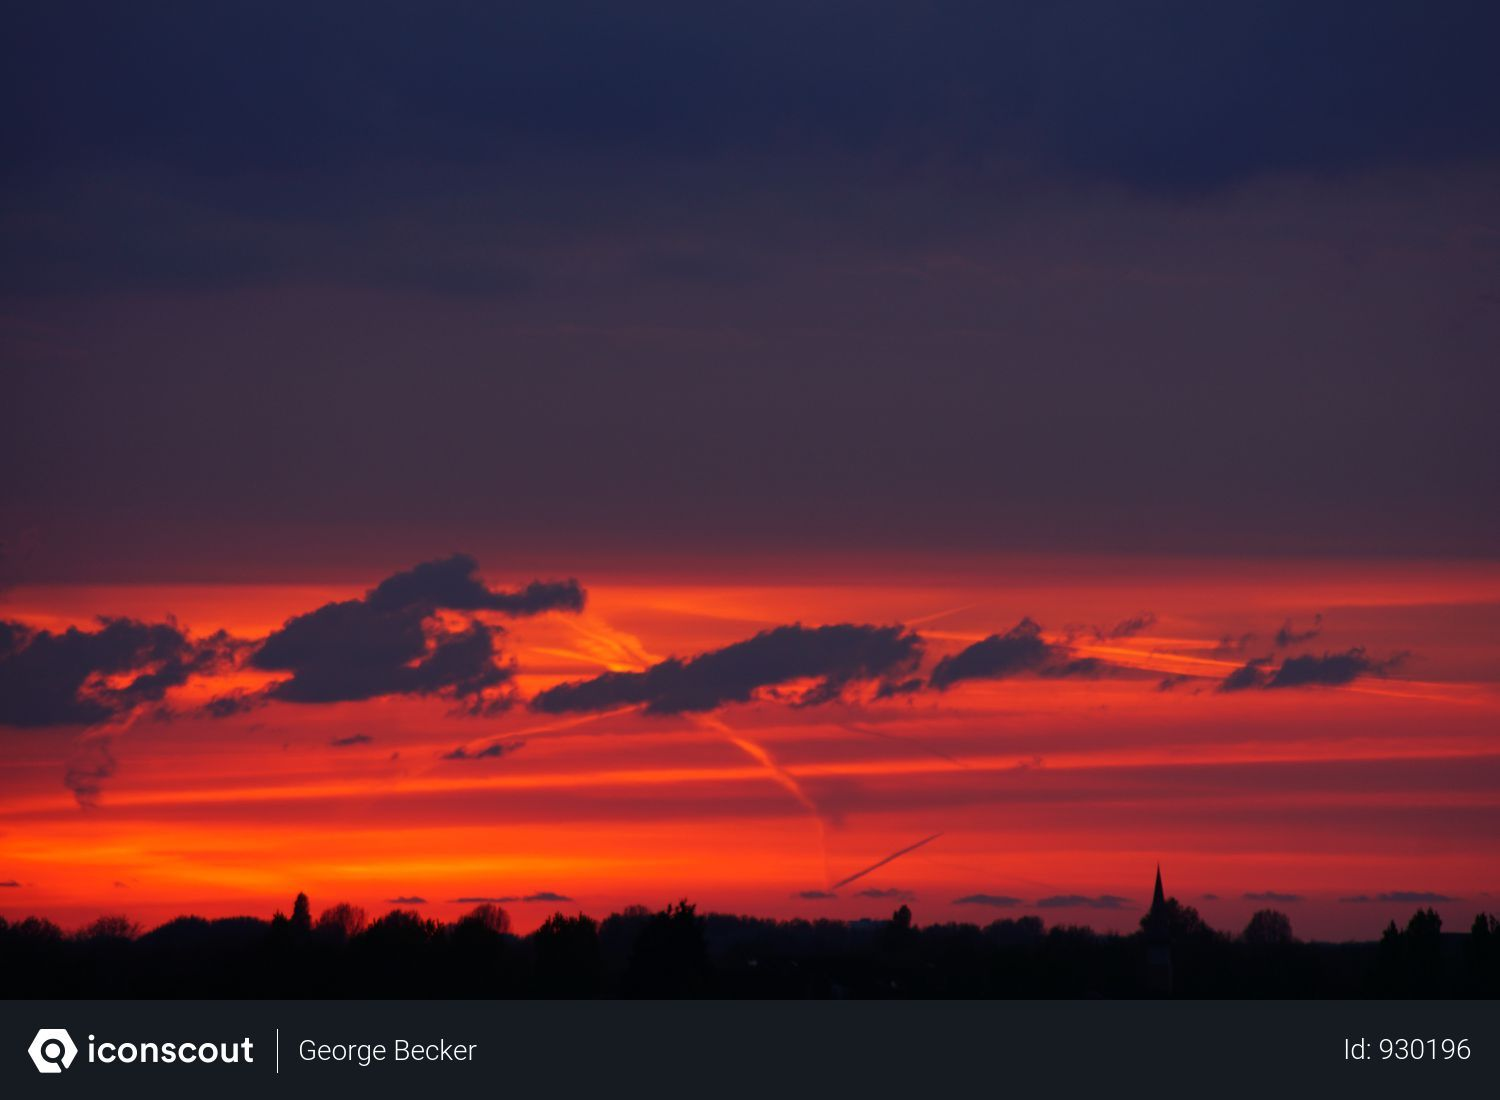 Free Beautiful Orange Sunset Sky With Dark Clouds Photo Download In Png Jpg Format Sunset Sky Cloud Photos Sunset